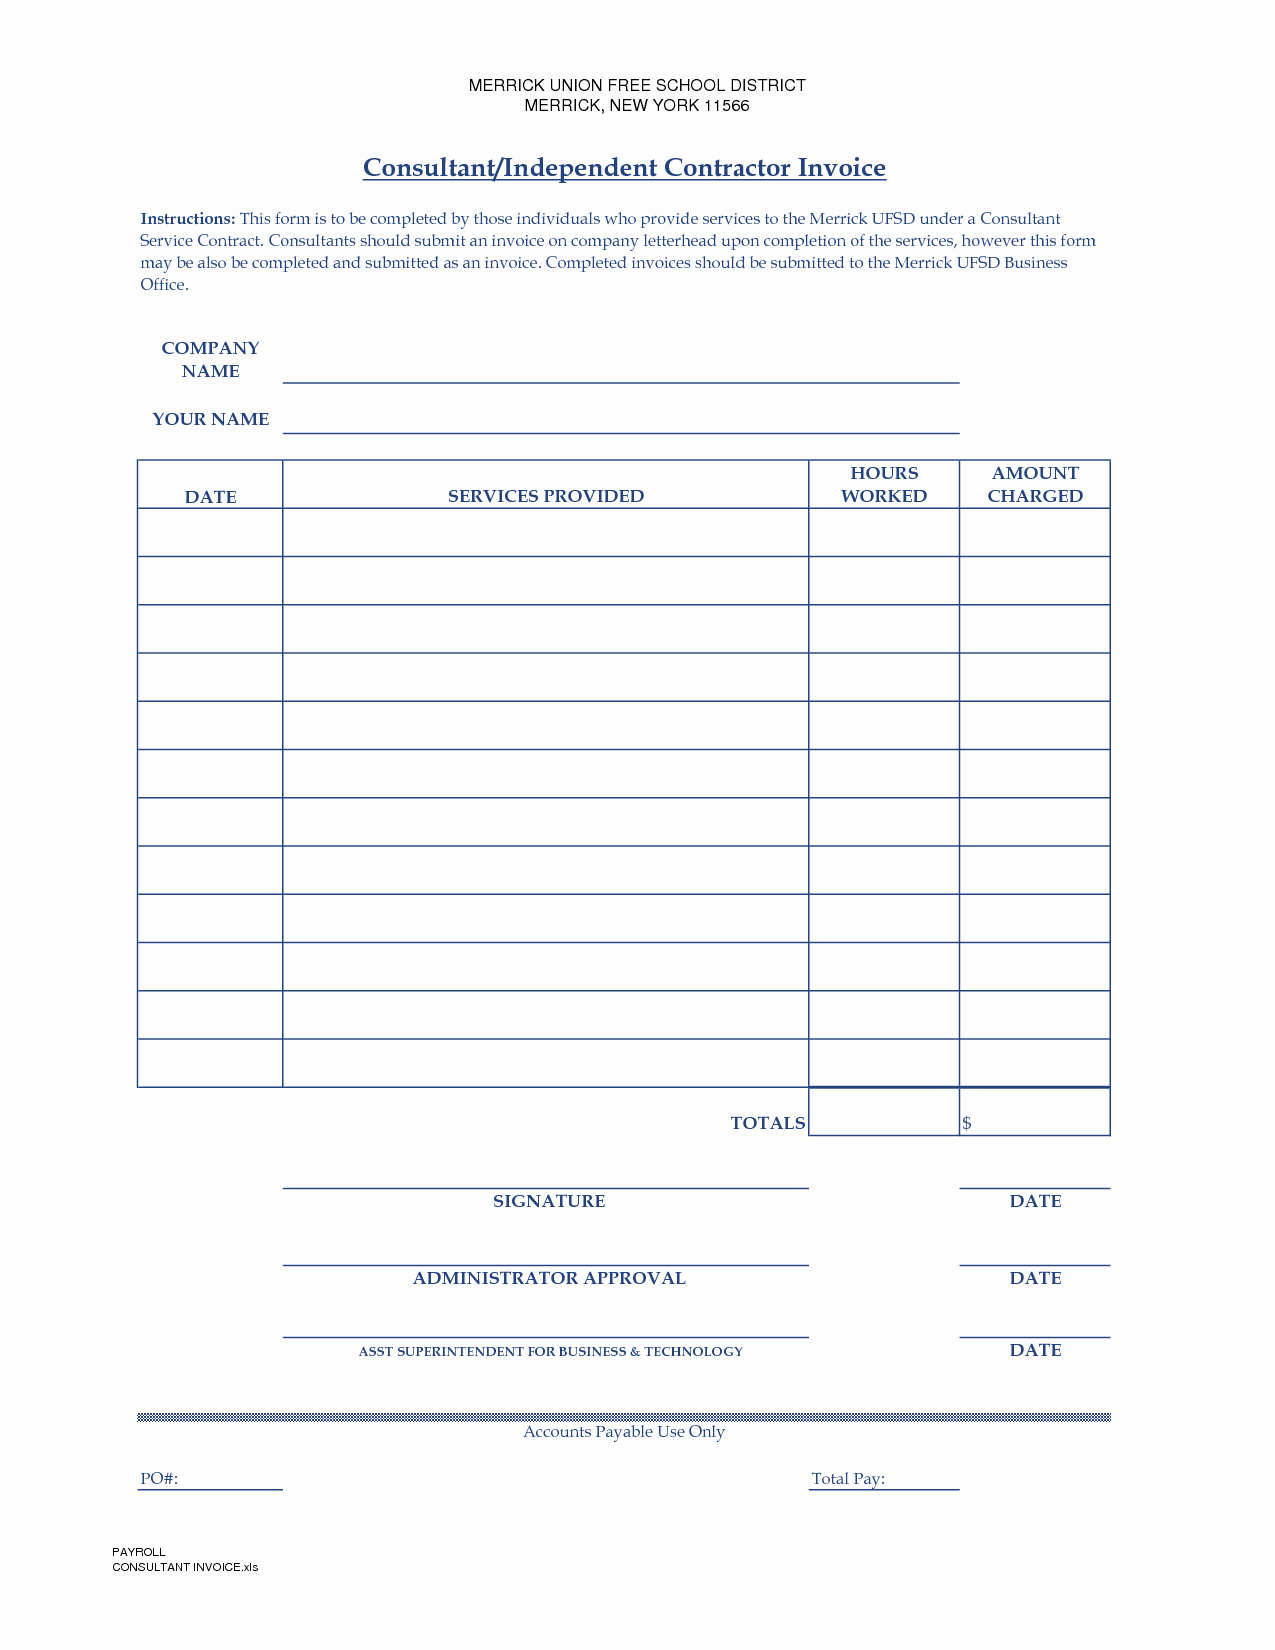 Contractor Invoice Template Word Luxury Independent Contractor Invoice Template